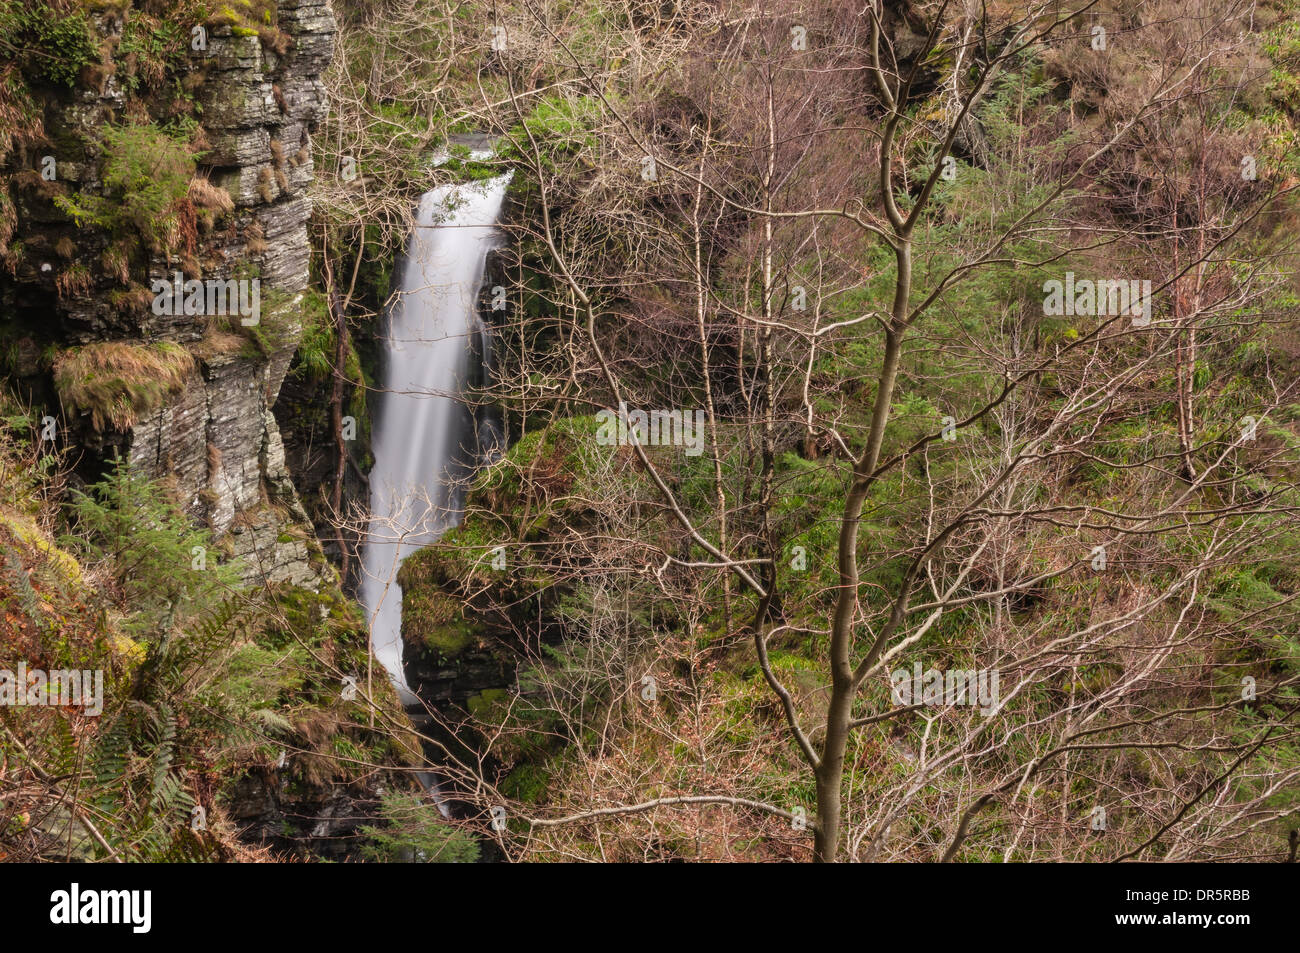 Spout Force waterfall in the English Lake District - Stock Image